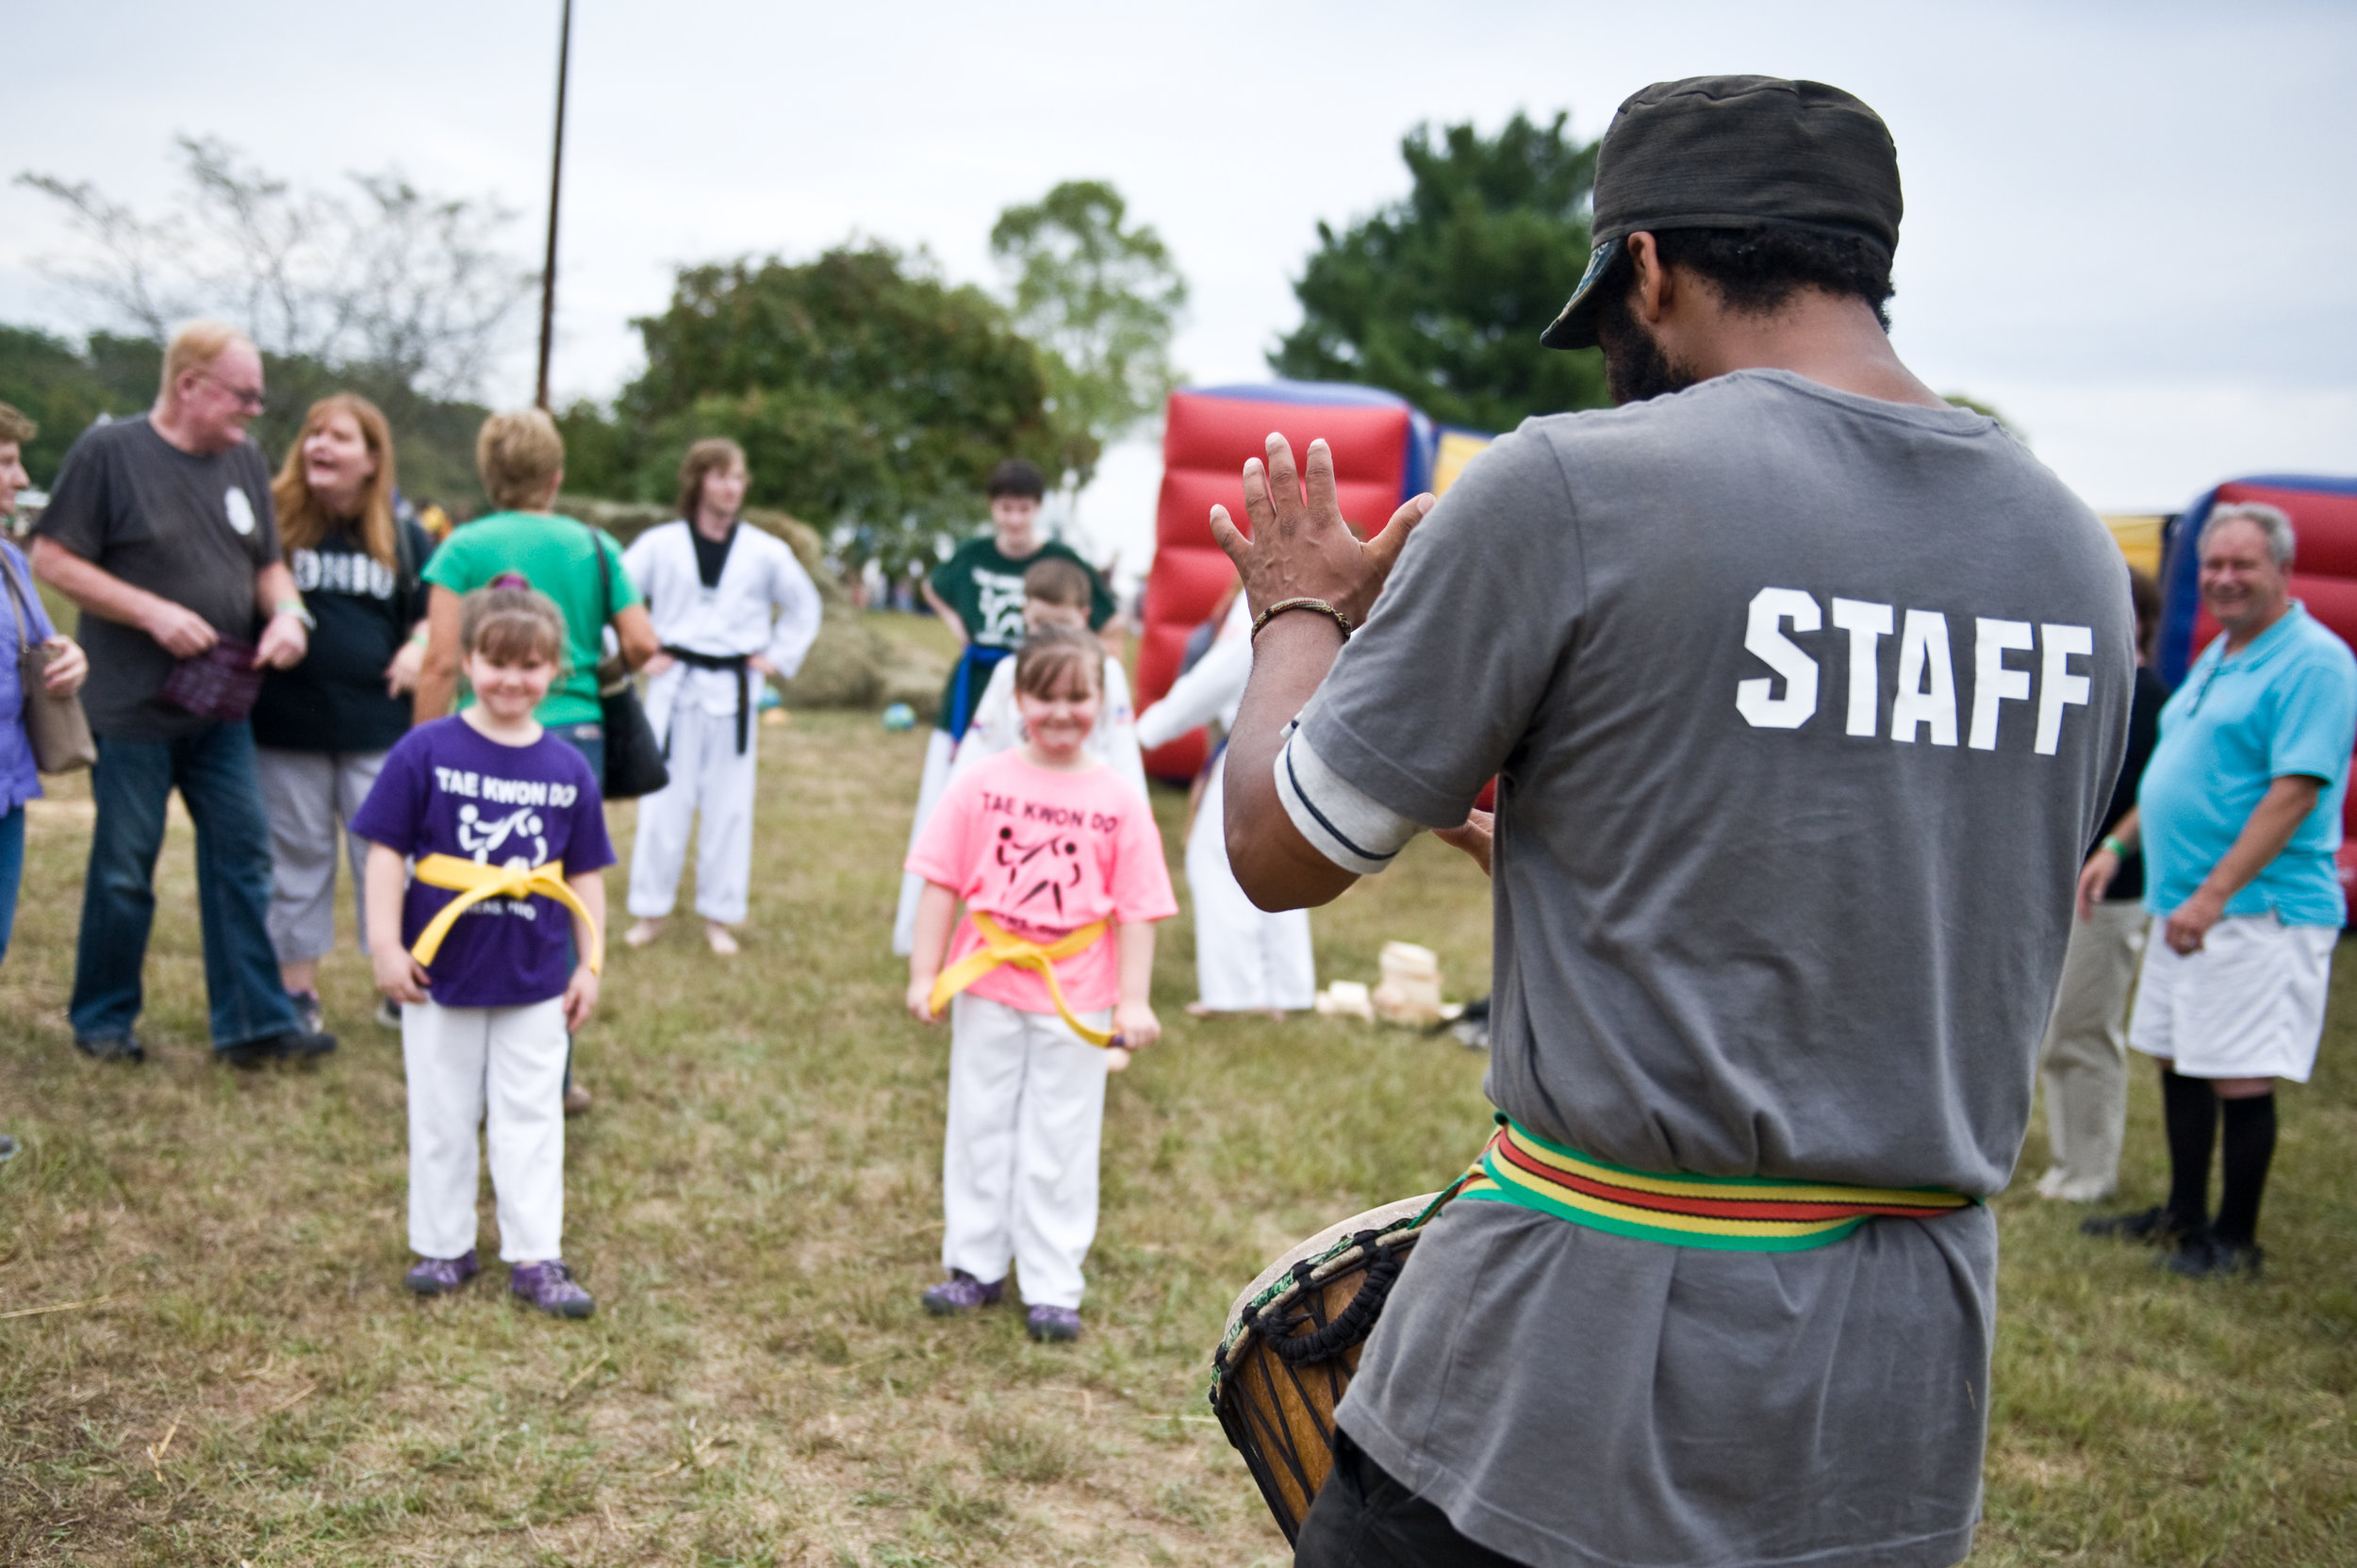 Lawrence Green, drumming the crowd together for the festival's Tae Kwan Do demonstration. Lawrence is part of the  RAW (Rising Appalachian Warriors)  program, which has summer camps for kiddos, and also hosted the kids' tent at the fest.Photo by  Michelle Waters